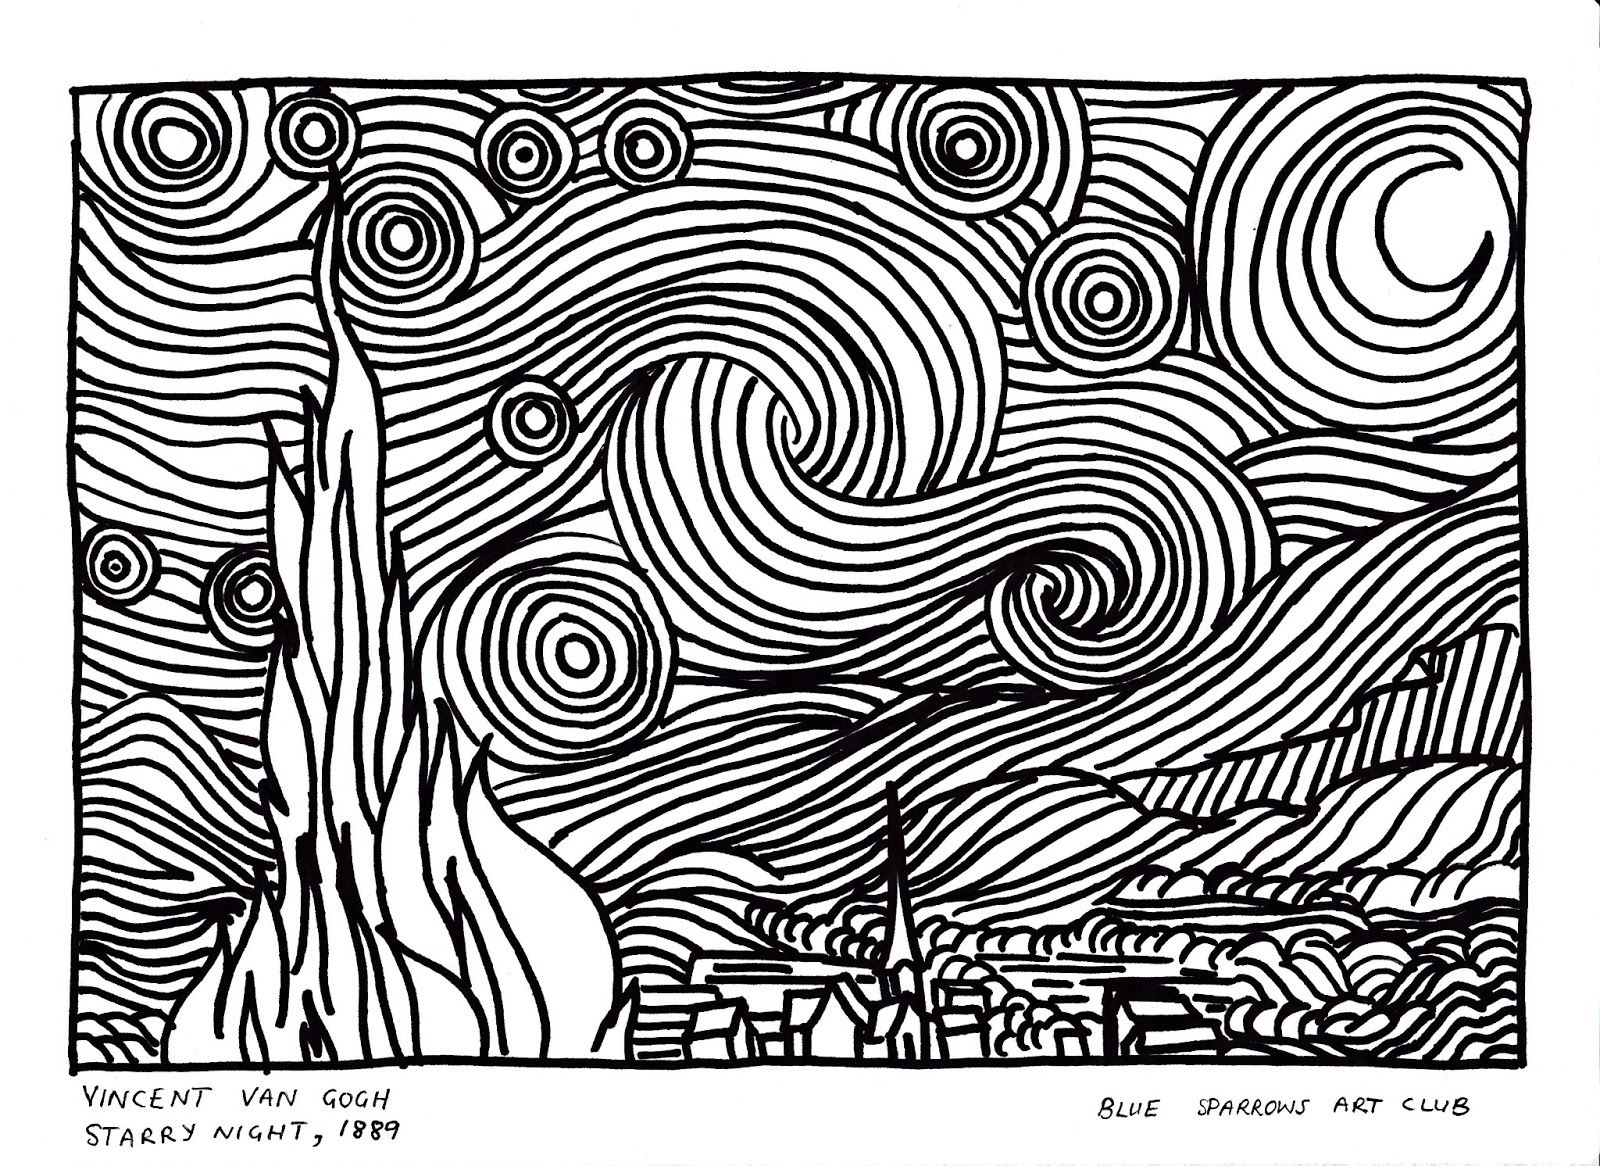 Van Gogh Starry Night Coloring Page, Vincent Van Gogh Starry Night ...